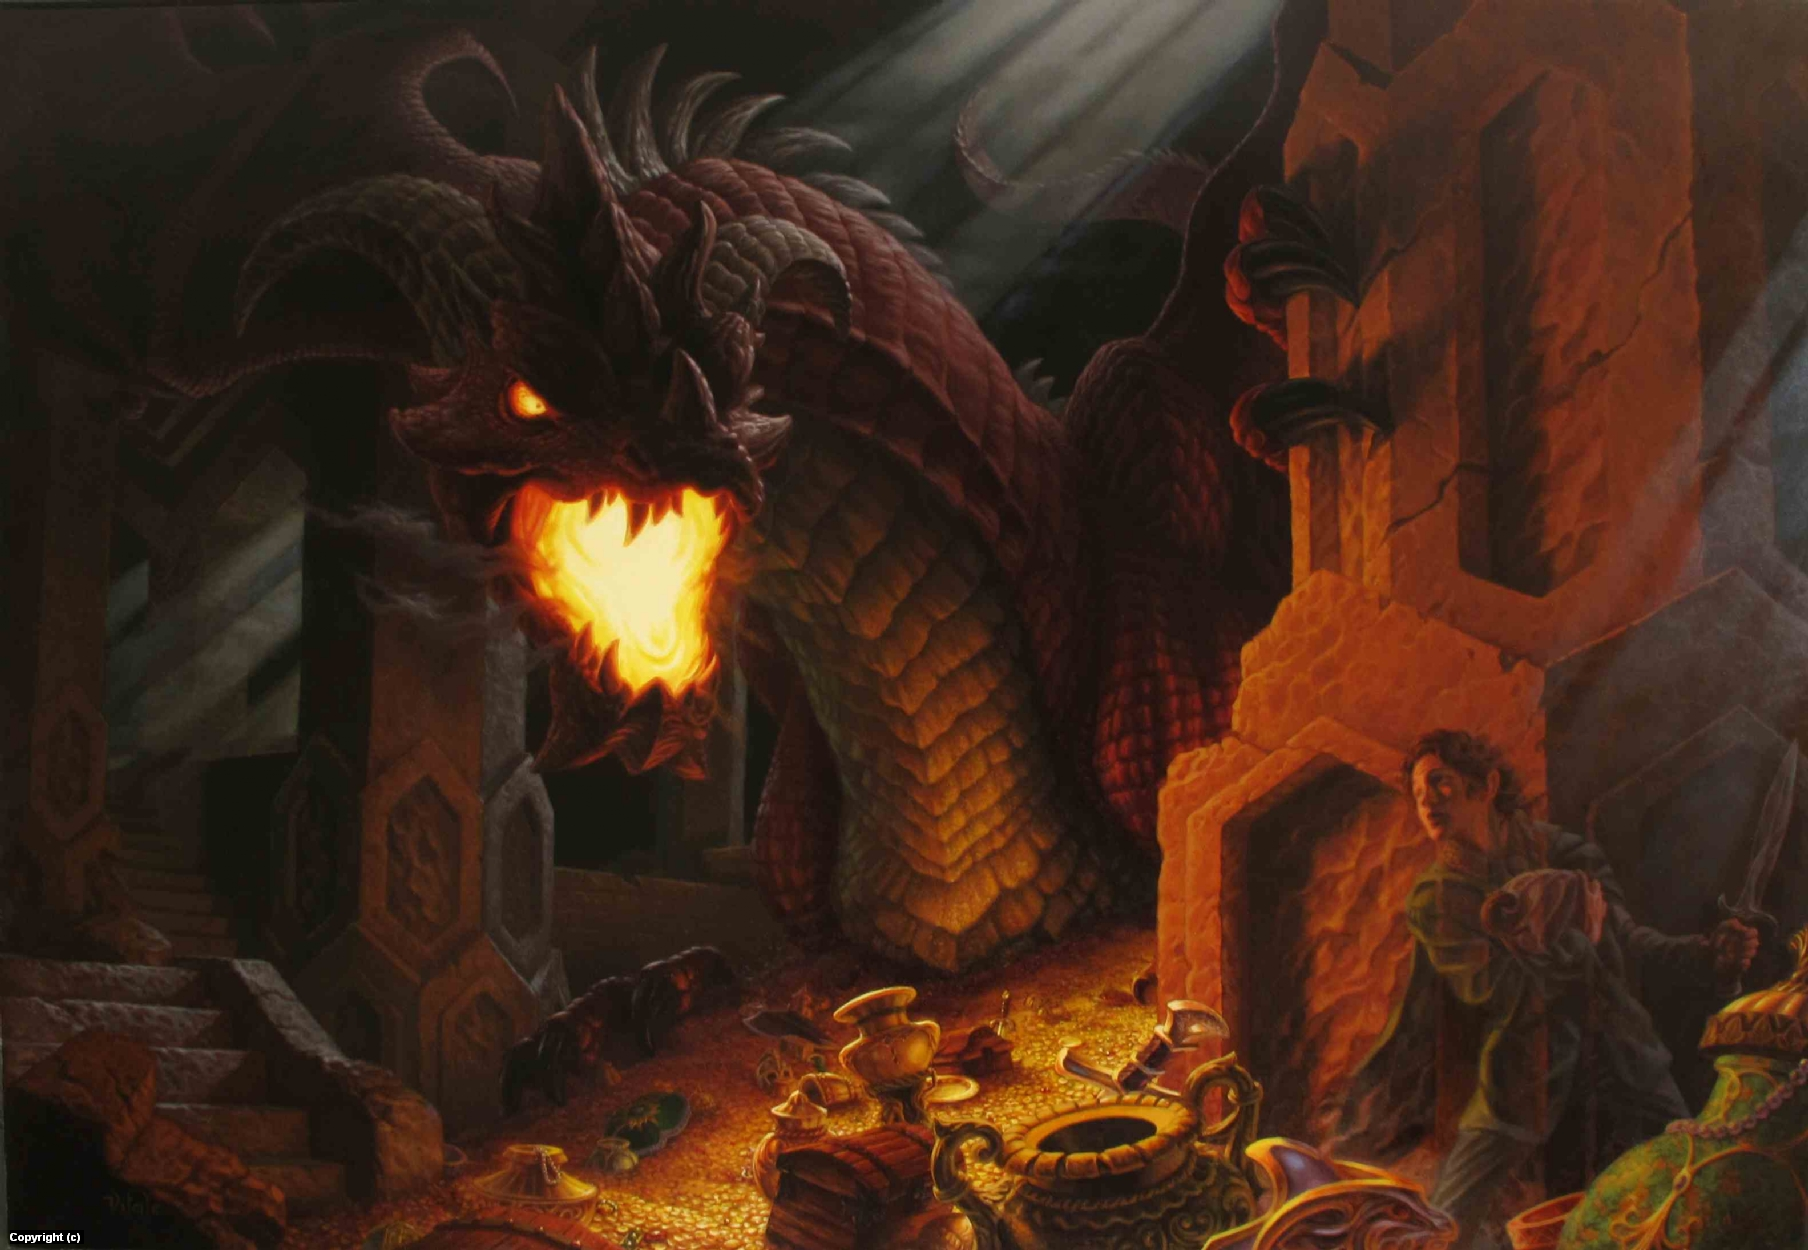 Thief Artwork by raoul vitale